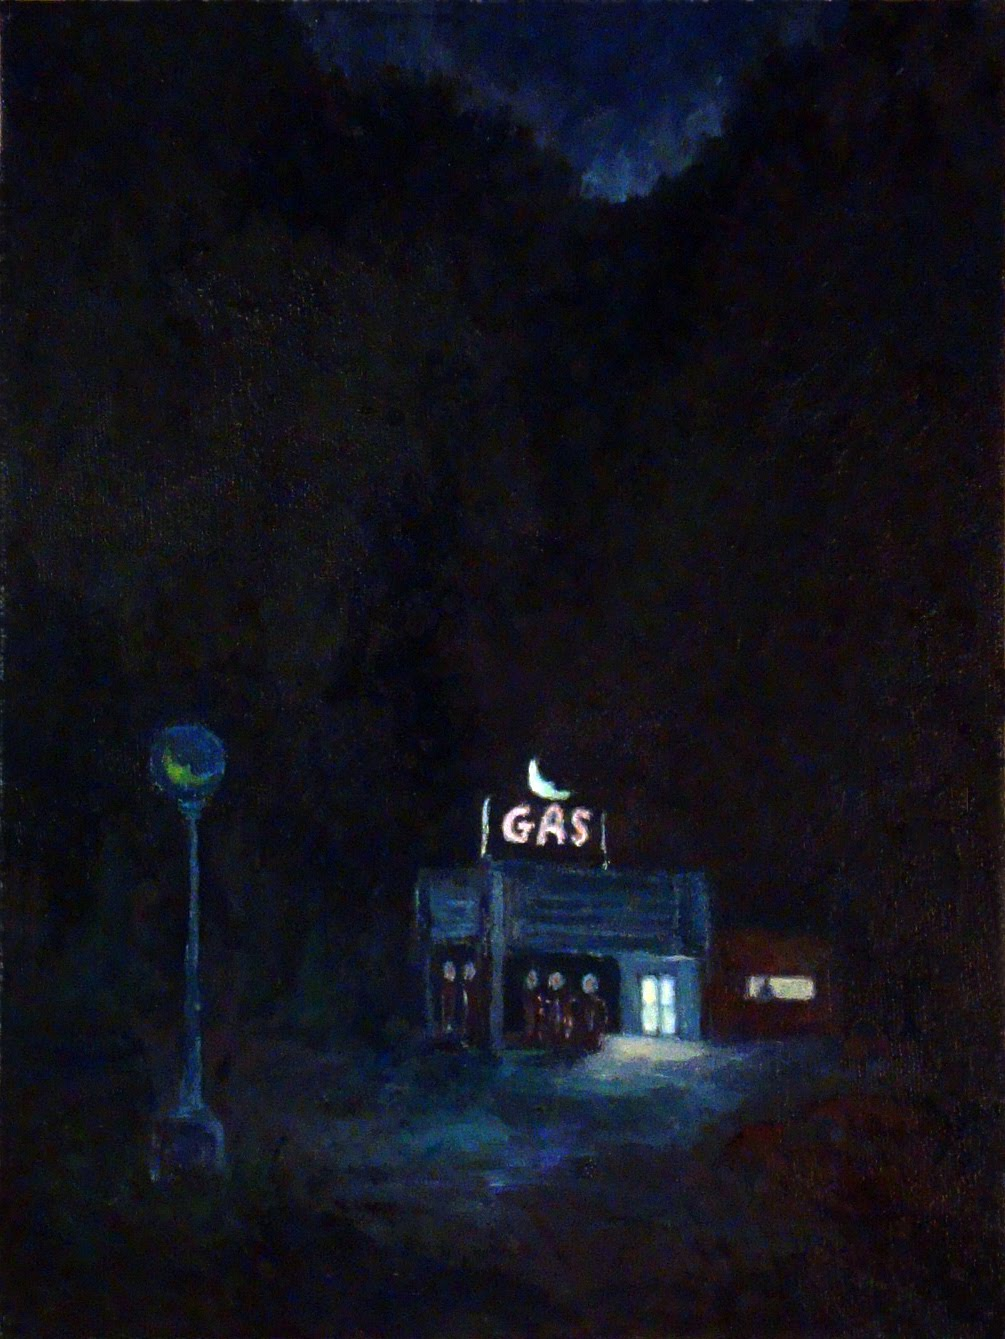 Night Wood Gas Station Summer 2010 Oil 12 X 9 Inches